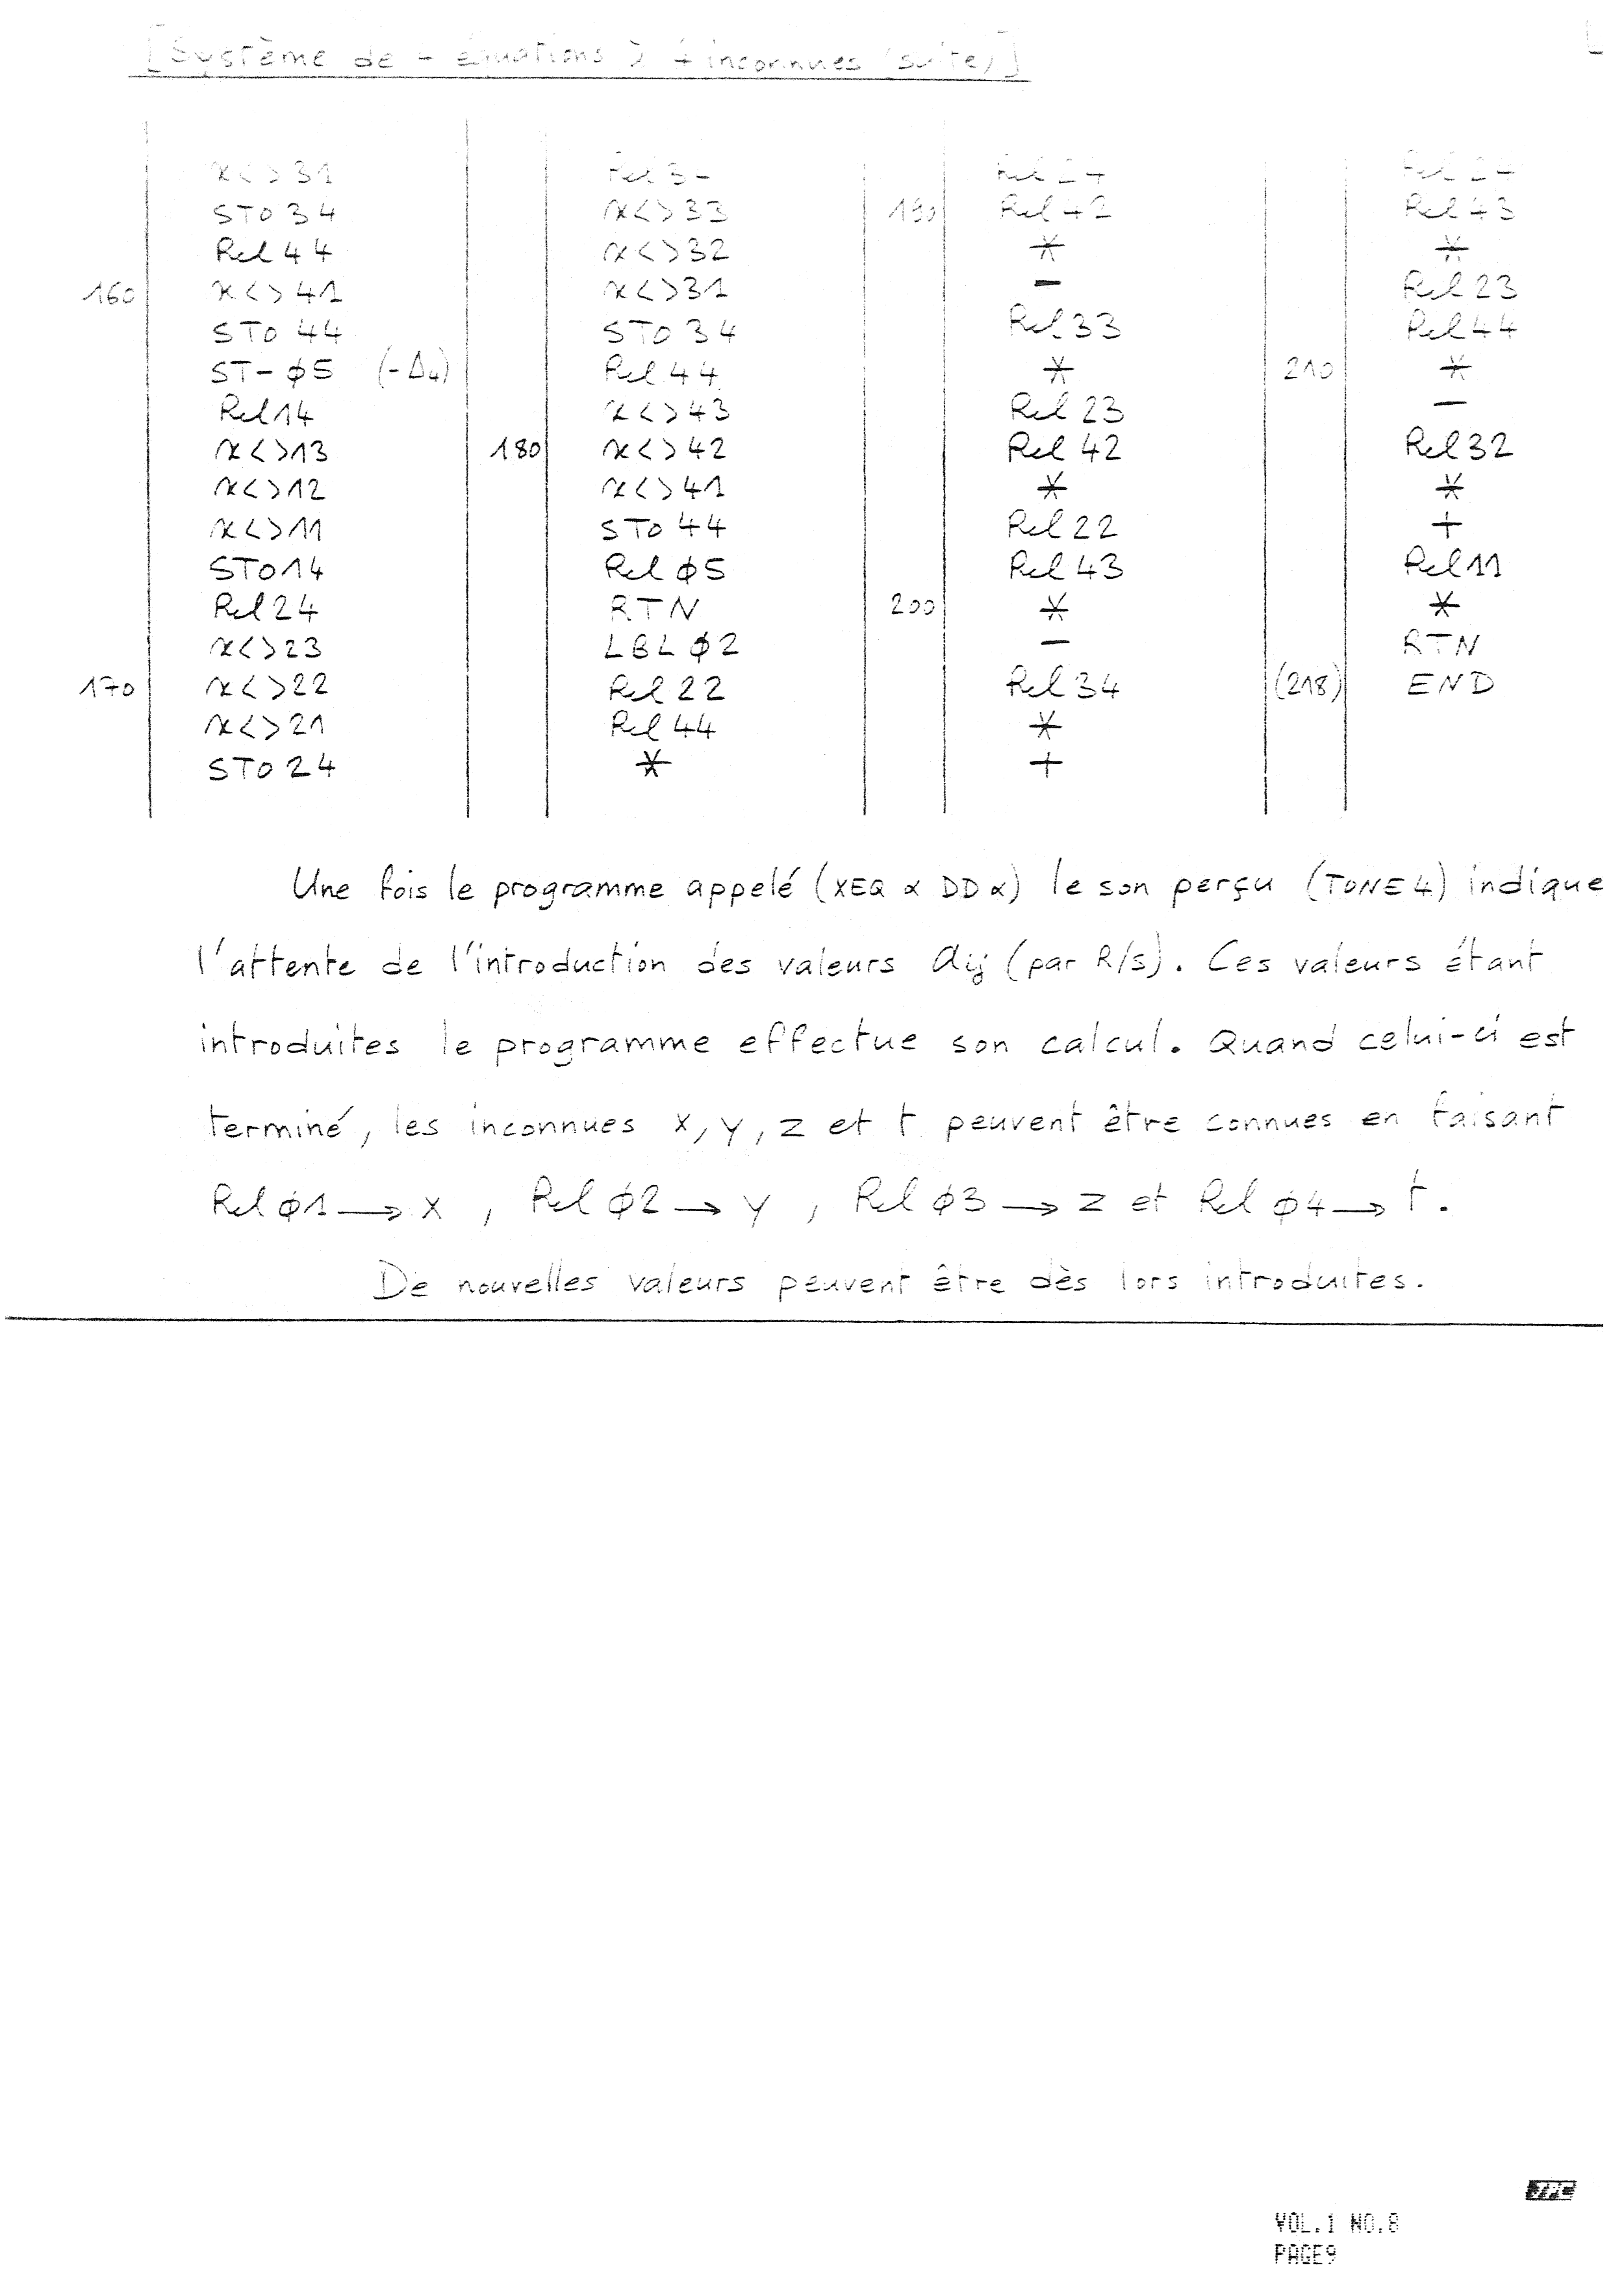 Jp-8-page-9-1000